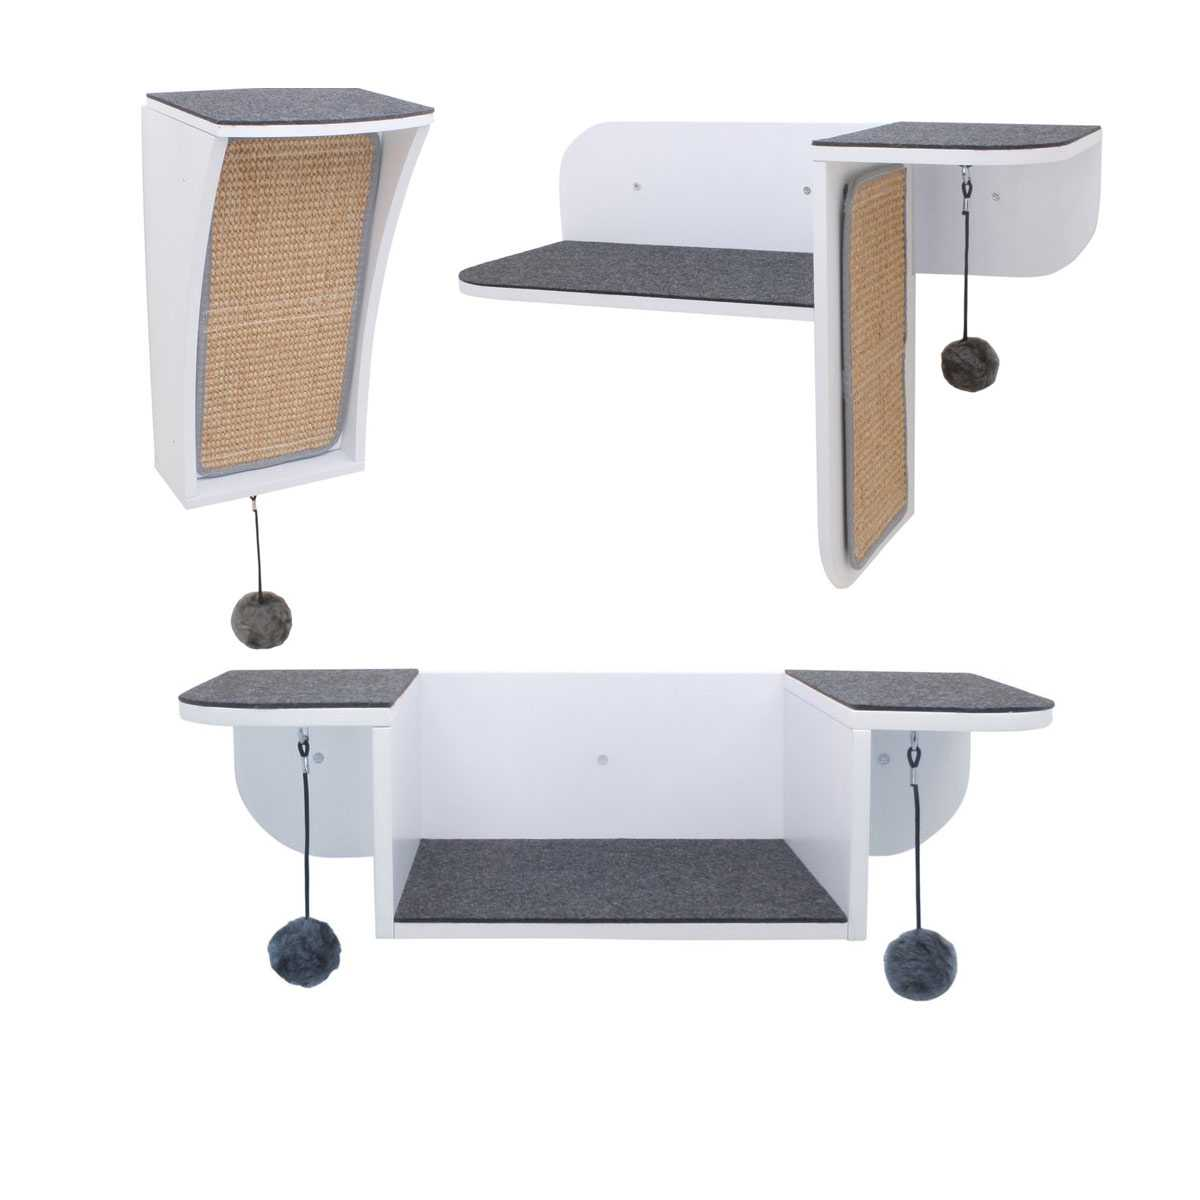 c3ee6c551c0f Modern Cat Wall System 3 Piece Combo Kit - CatsPlay Superstore